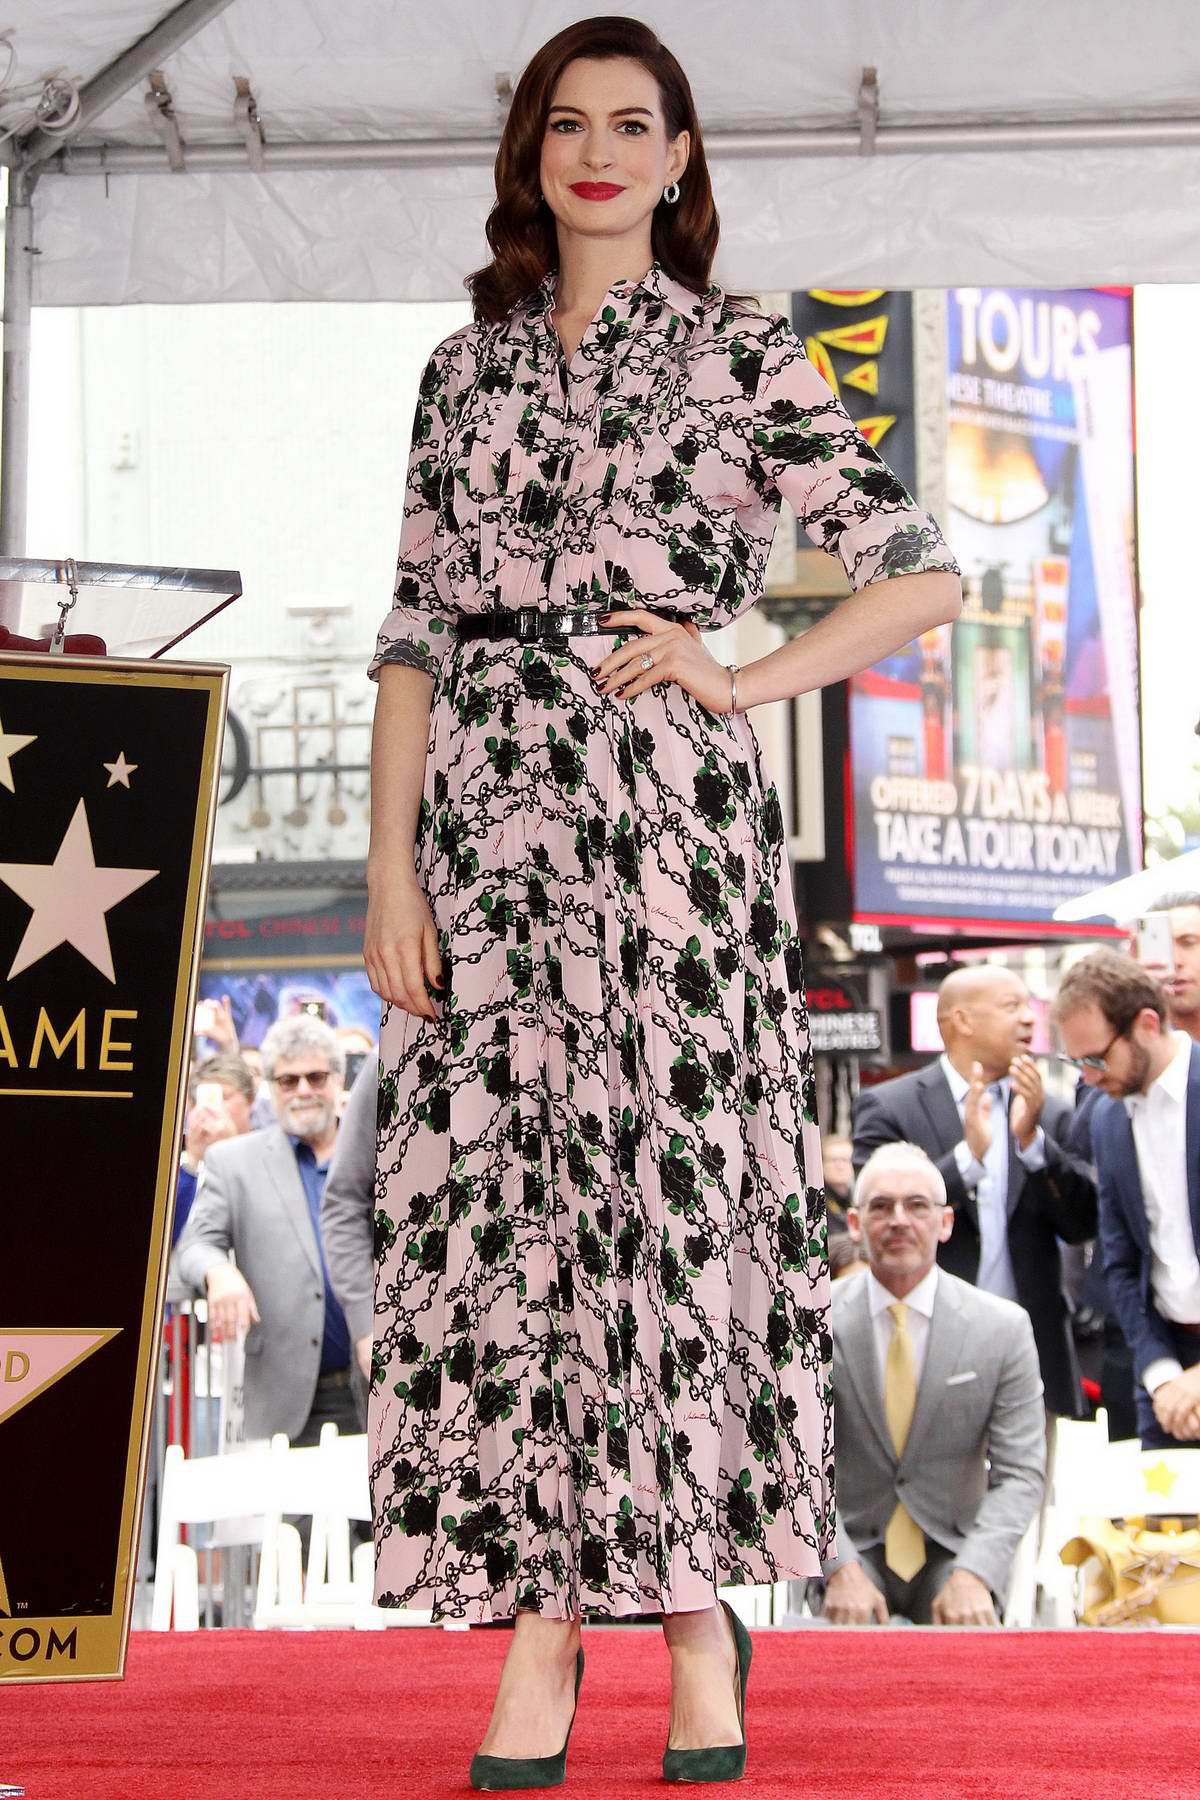 Anne Hathaway honored with Star on The Hollywood Walk of Fame in Los Angeles